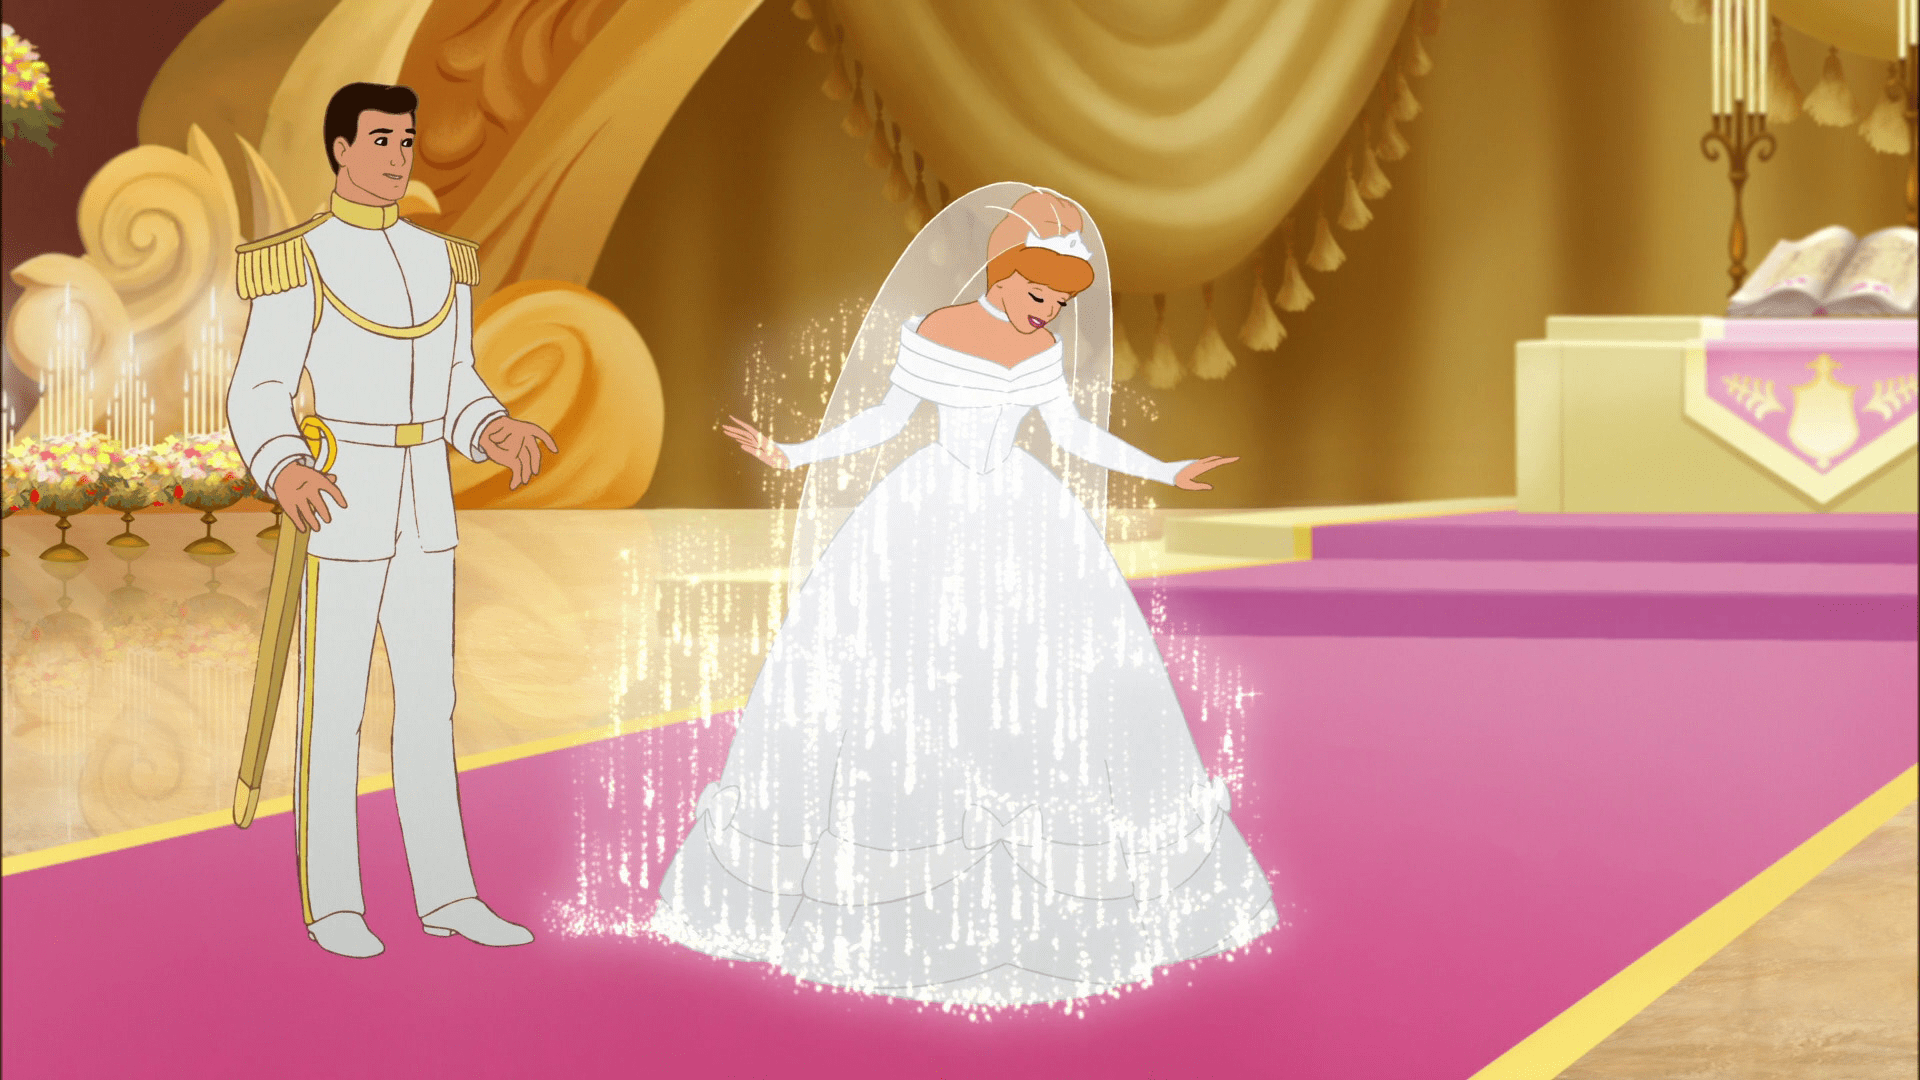 What's your favorite outfit that Cinderella wears in this ...